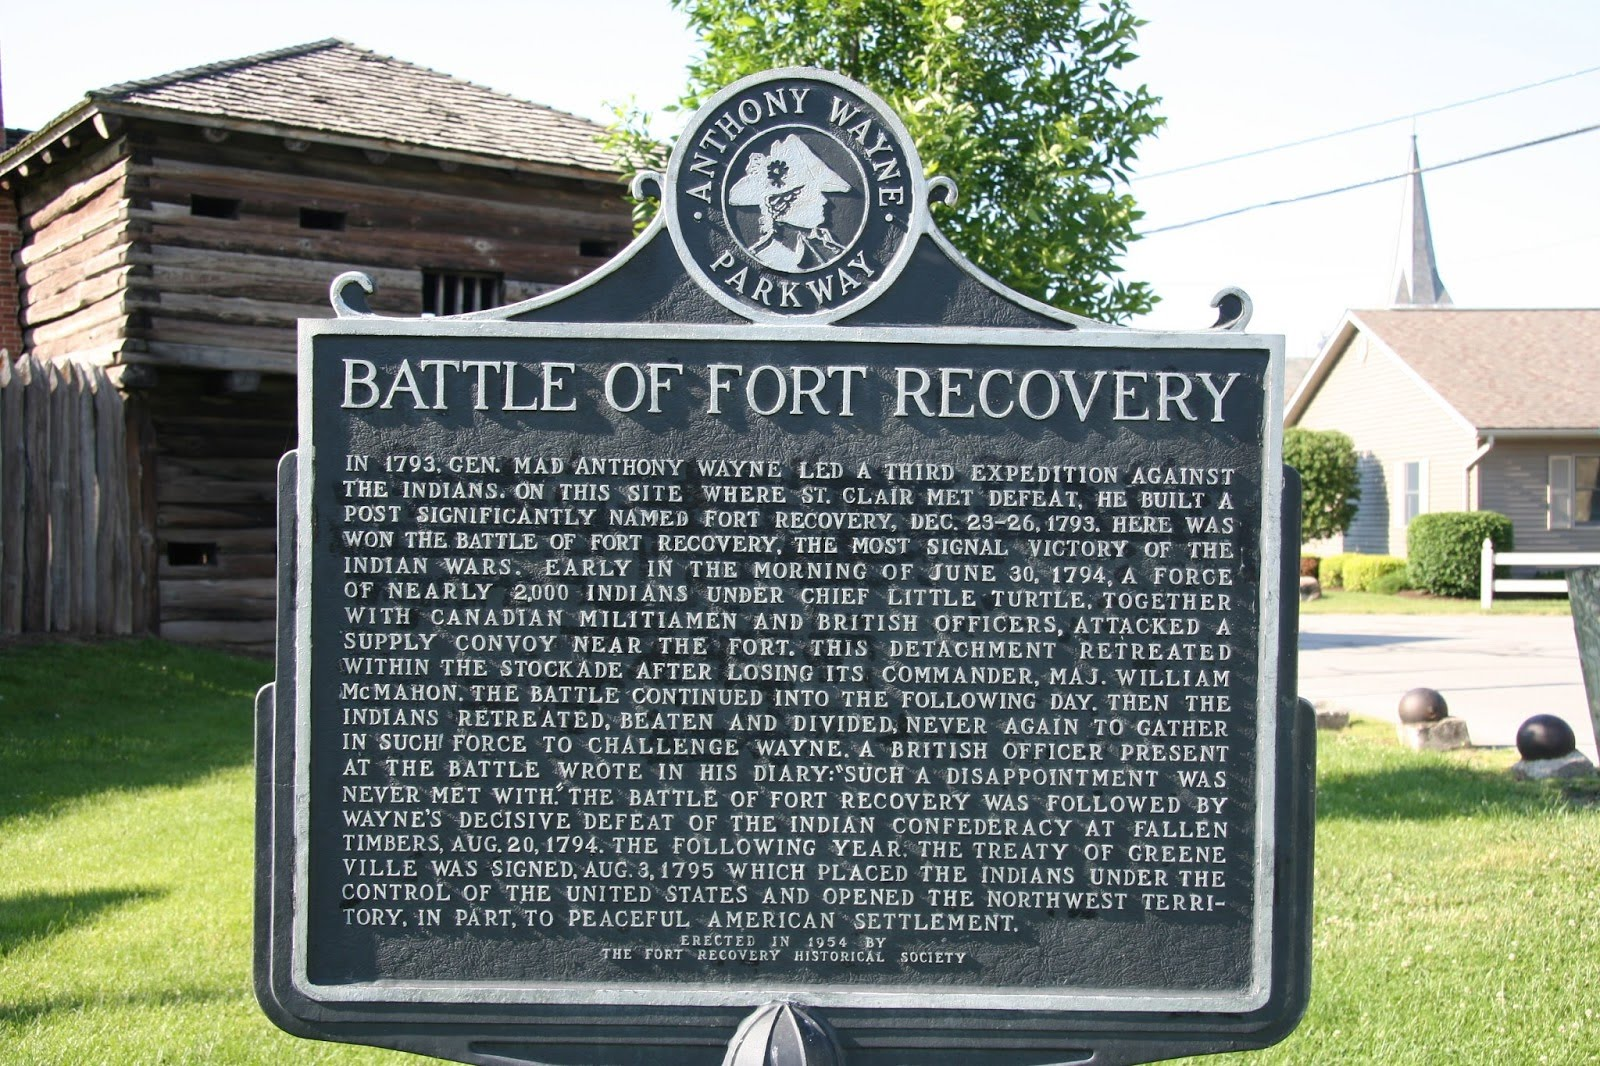 Ohio mercer county fort recovery - About